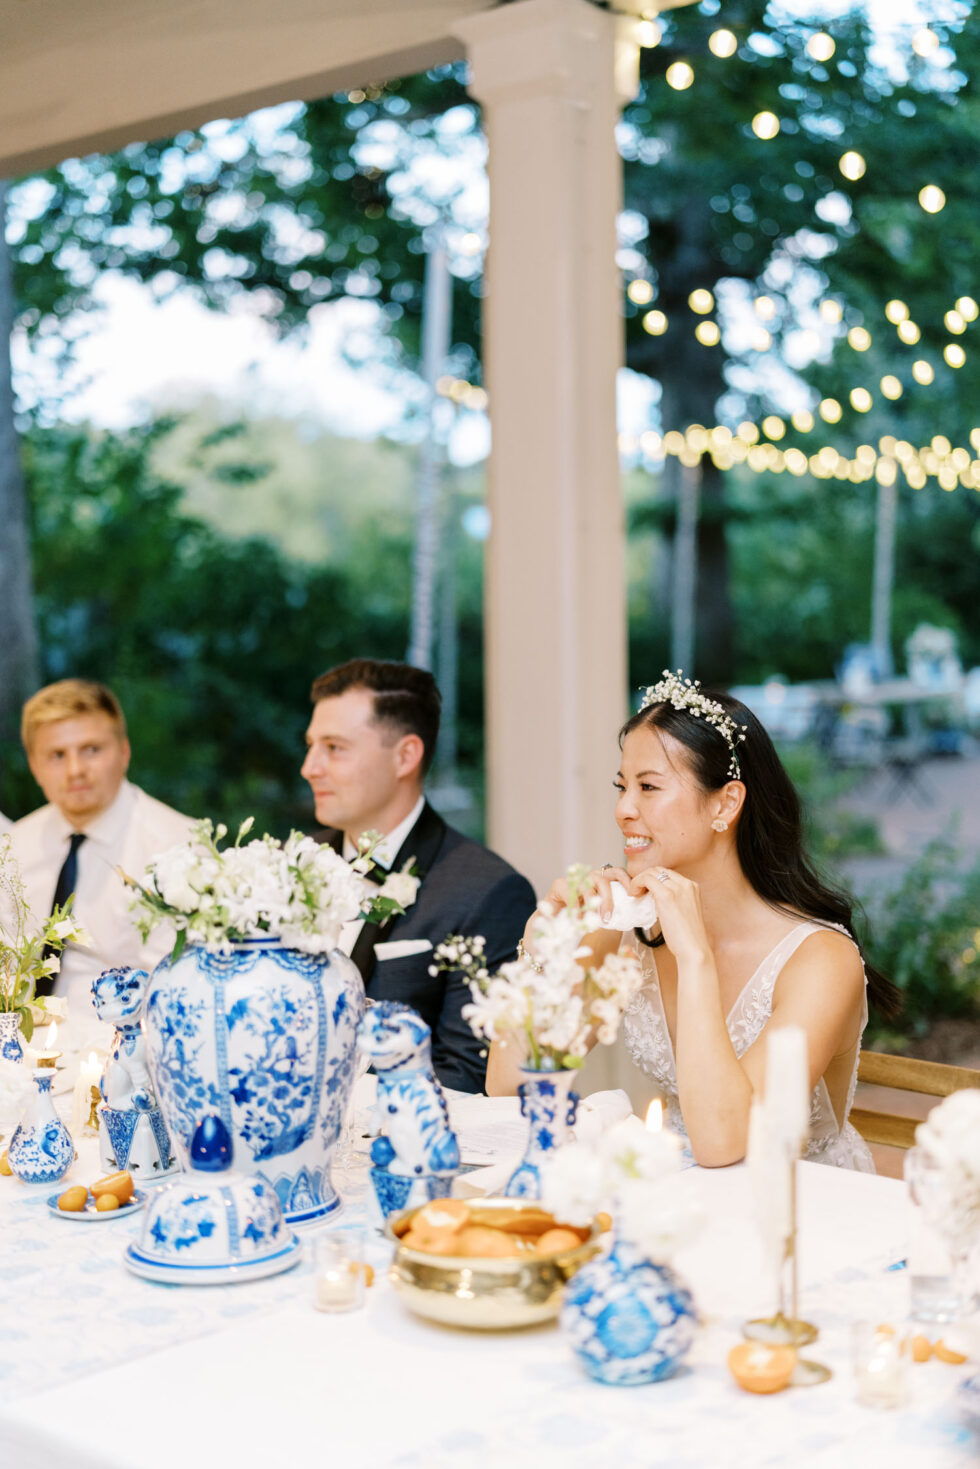 Chinoiserie-Chic-Wedding-The-Prettiest-Pieces-48